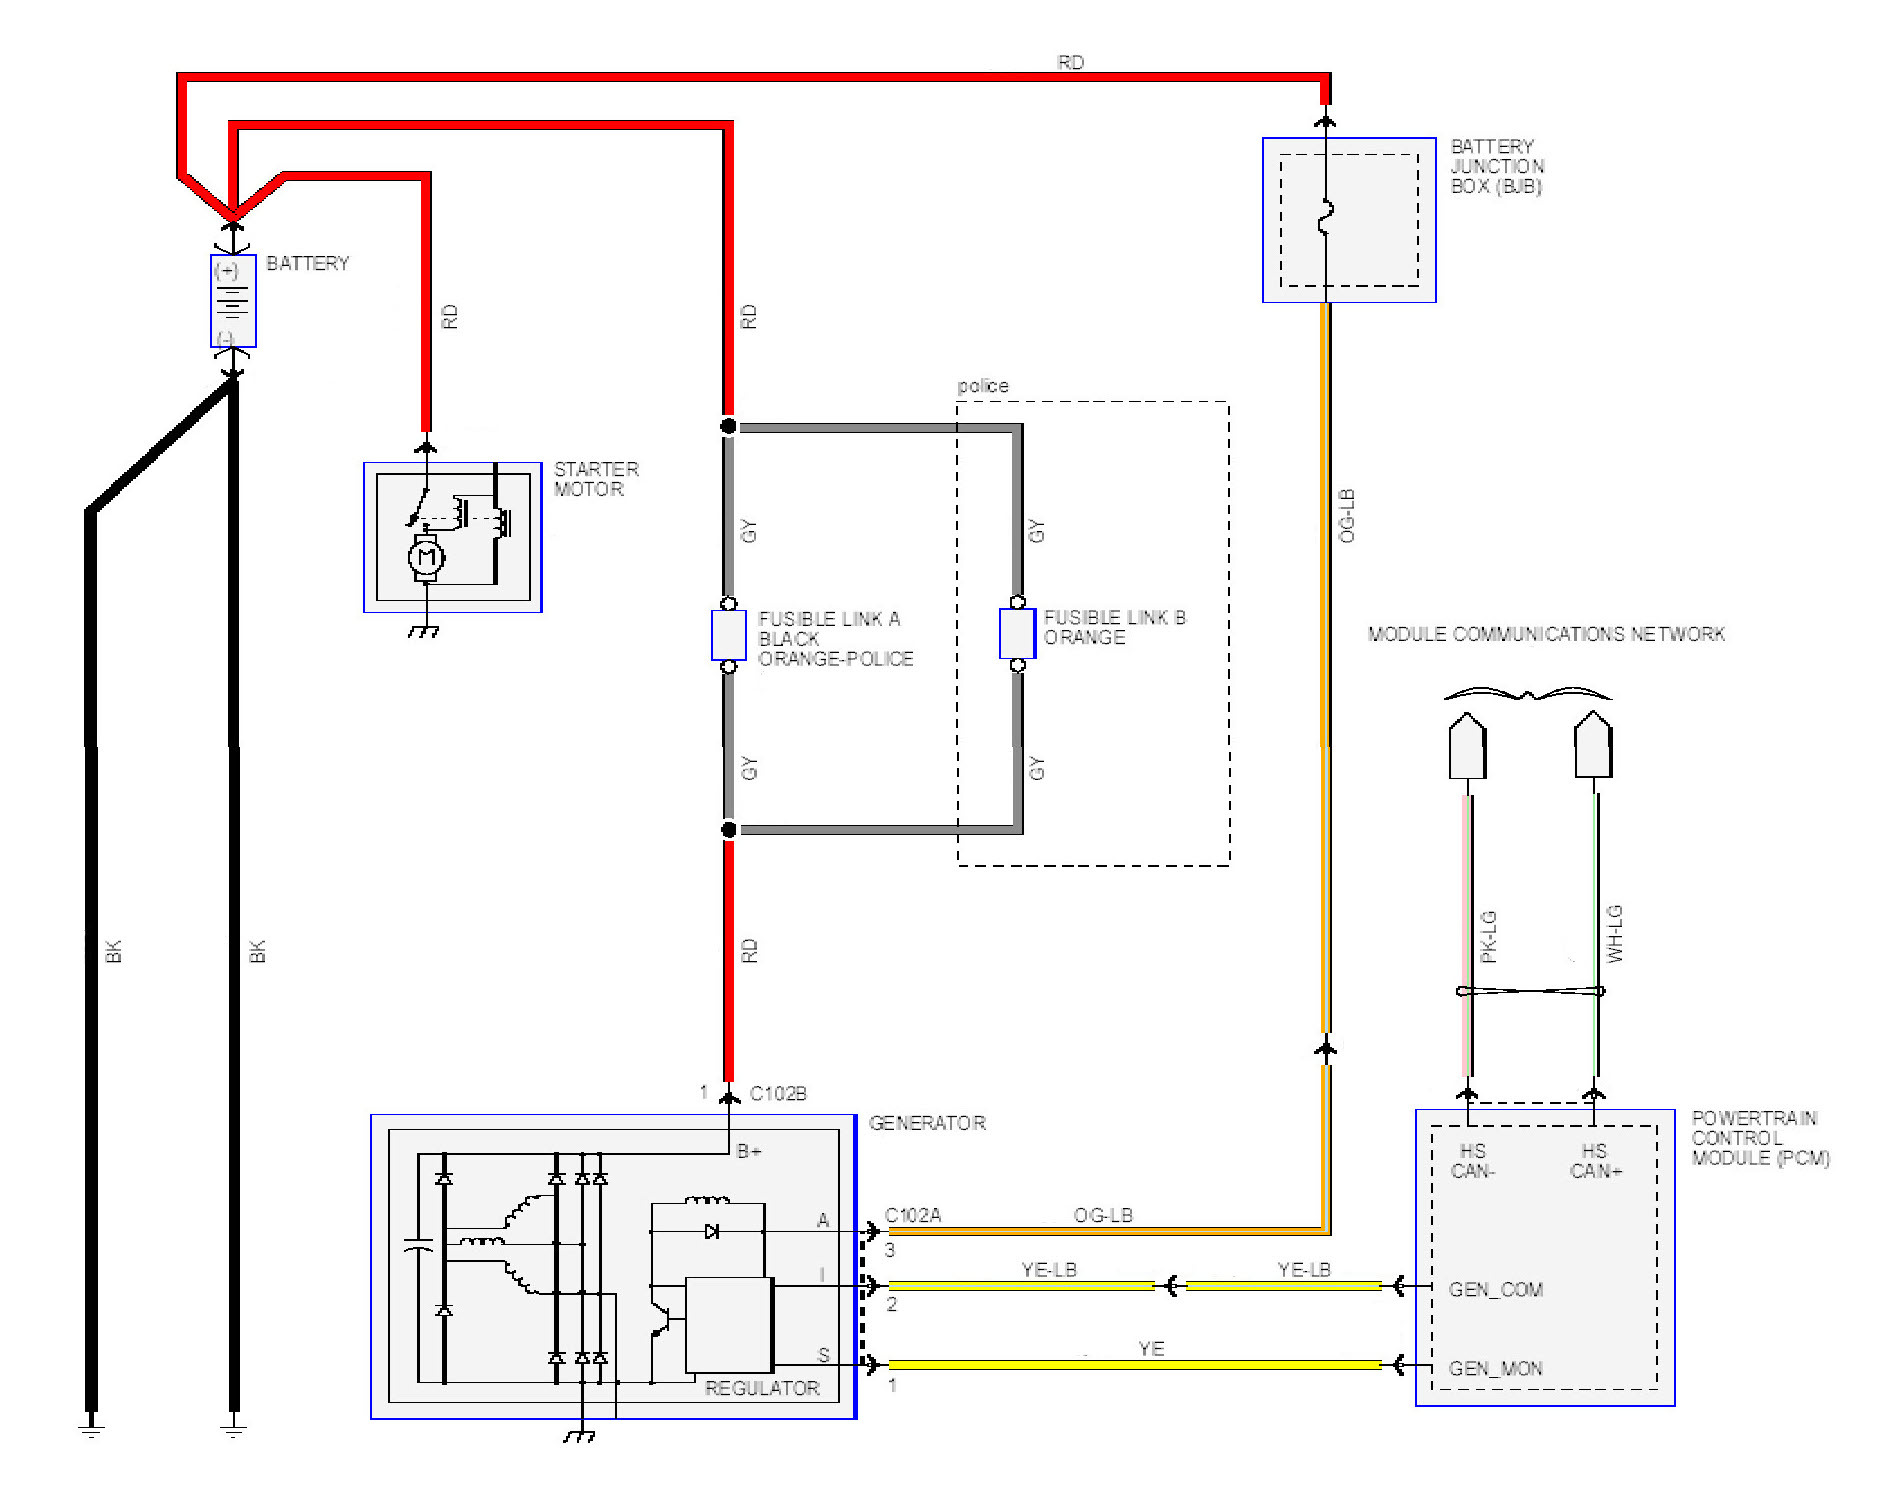 alternator diagram wiring mercedes sprinter fuse box ford crown victoria diagrams